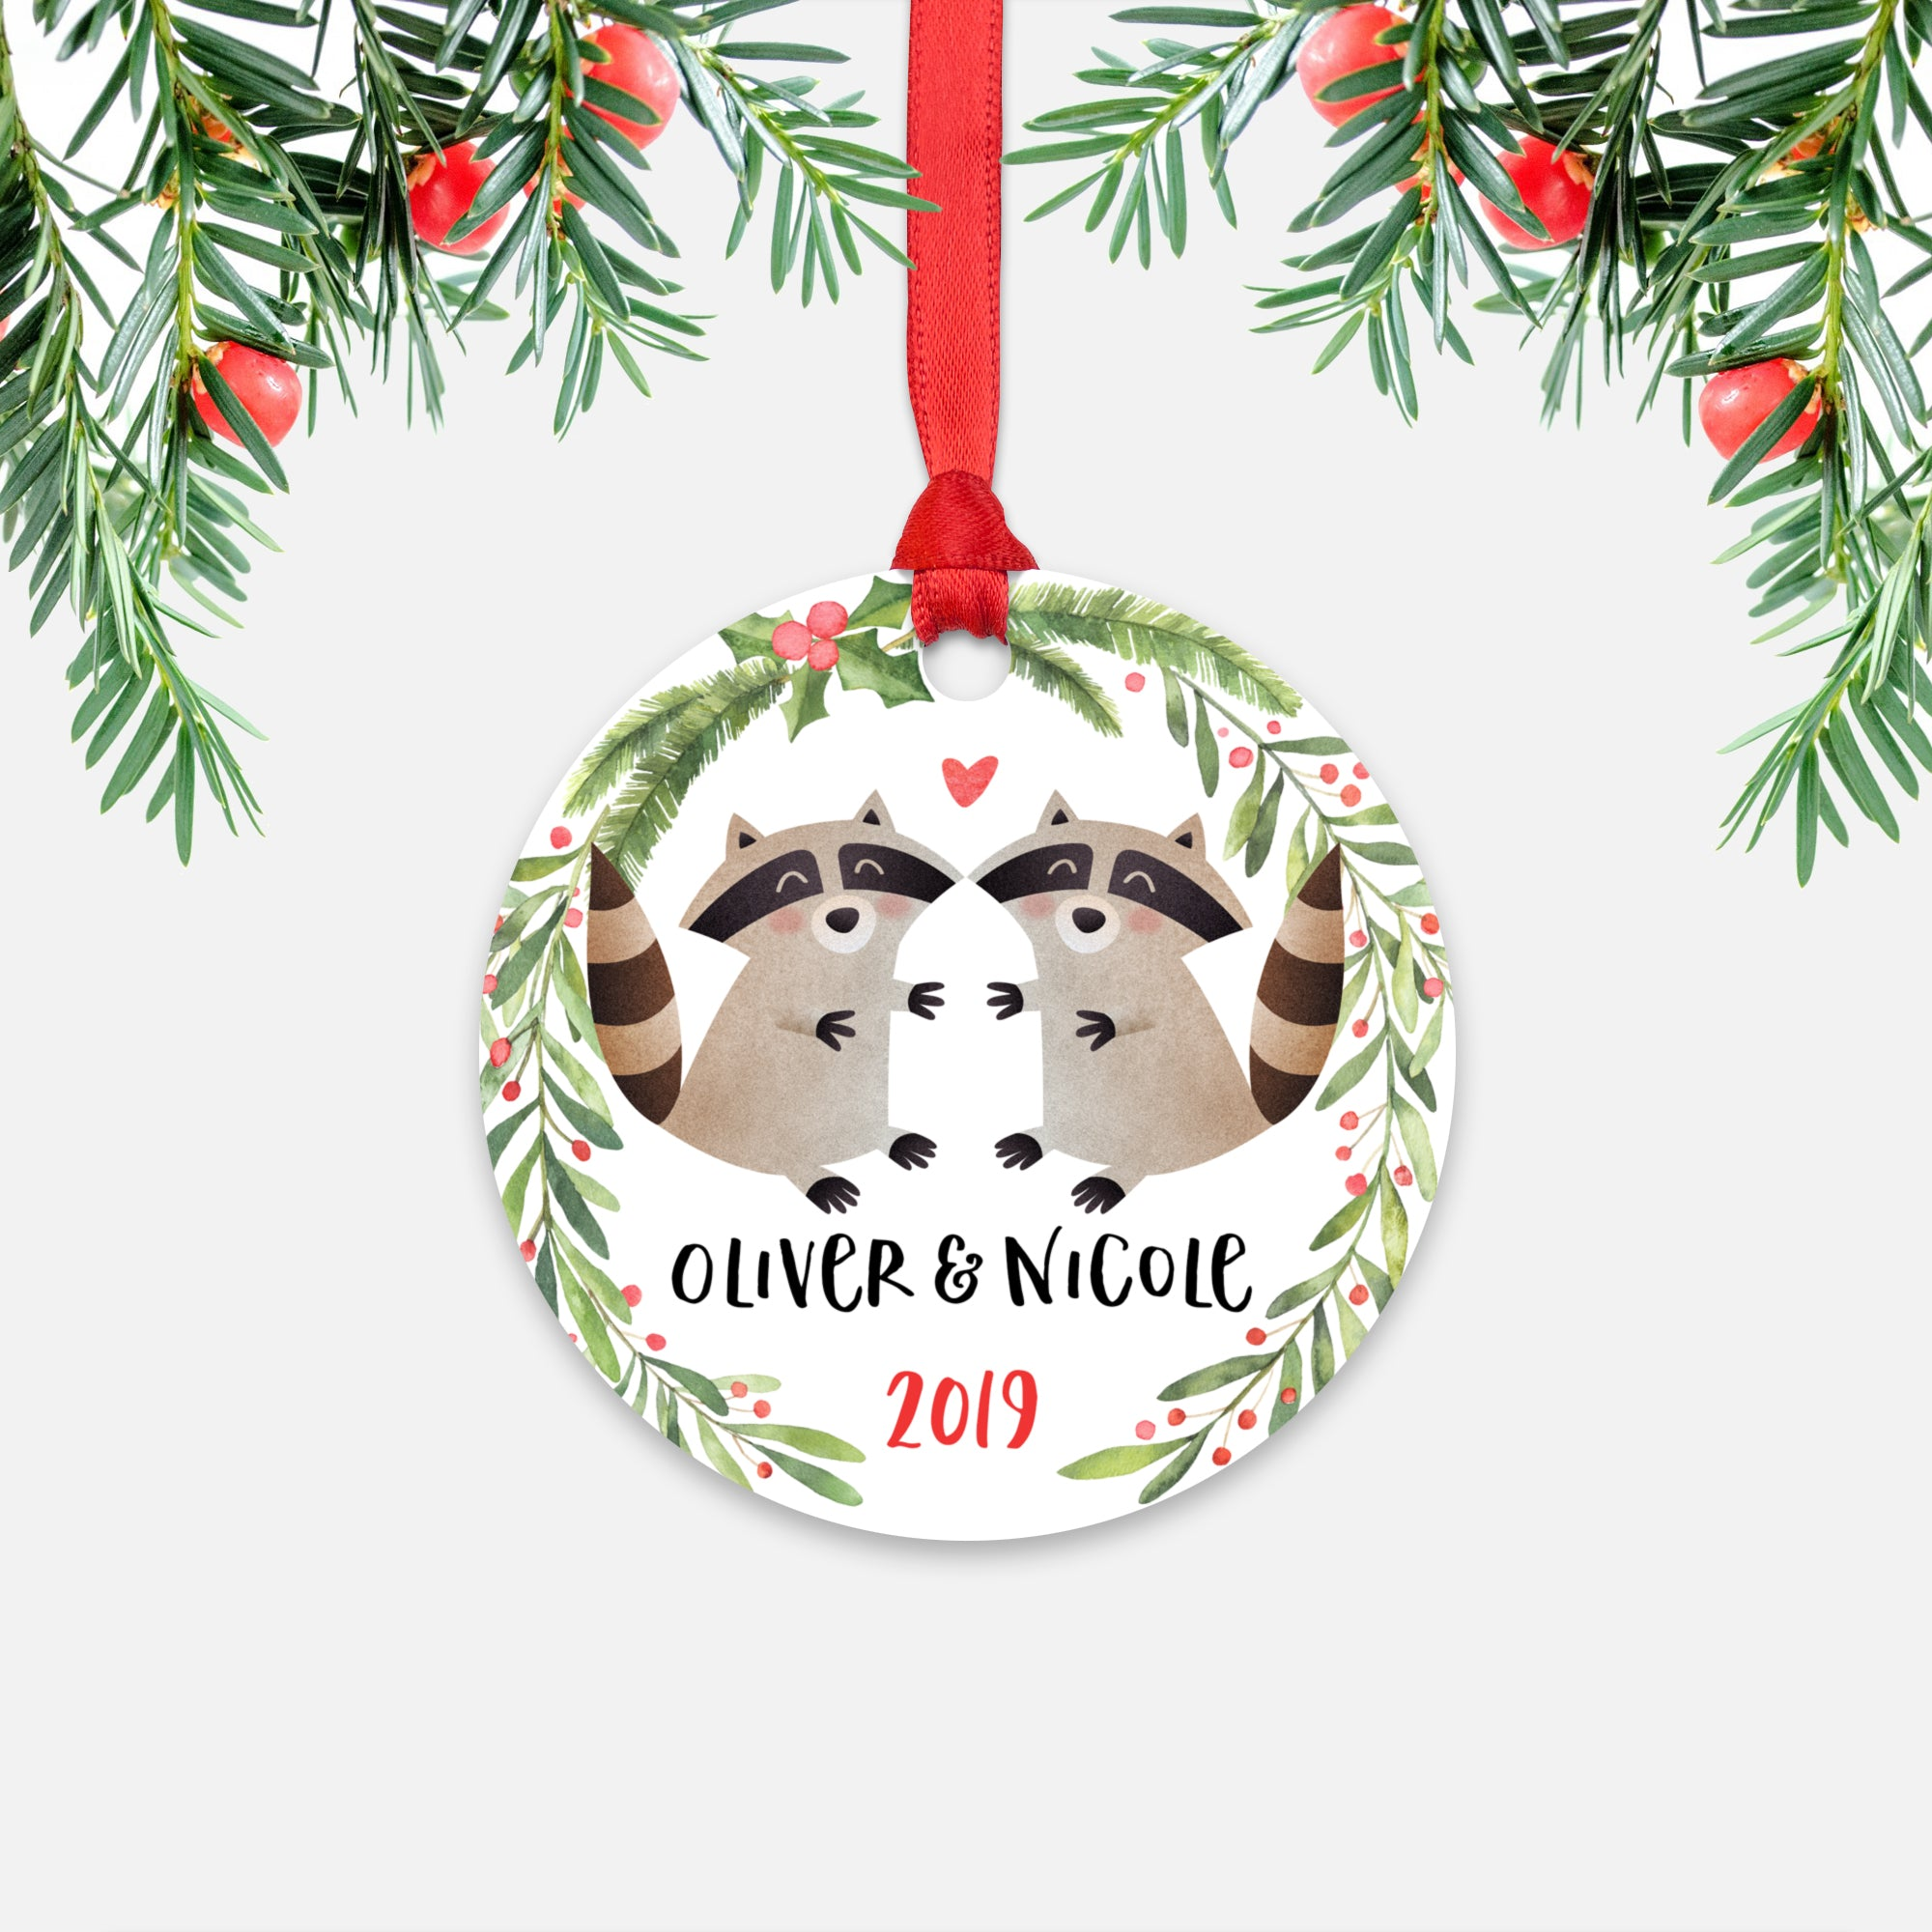 Raccoon Couple Personalized Christmas Ornament - Holidays Custom Gift for Animal Lover Wedding Engagement Newlyweds Wife Husband Boyfriend Girlfriend - Round Aluminum - Red Ribbon Hanging in Tree - by Happy Cat Prints